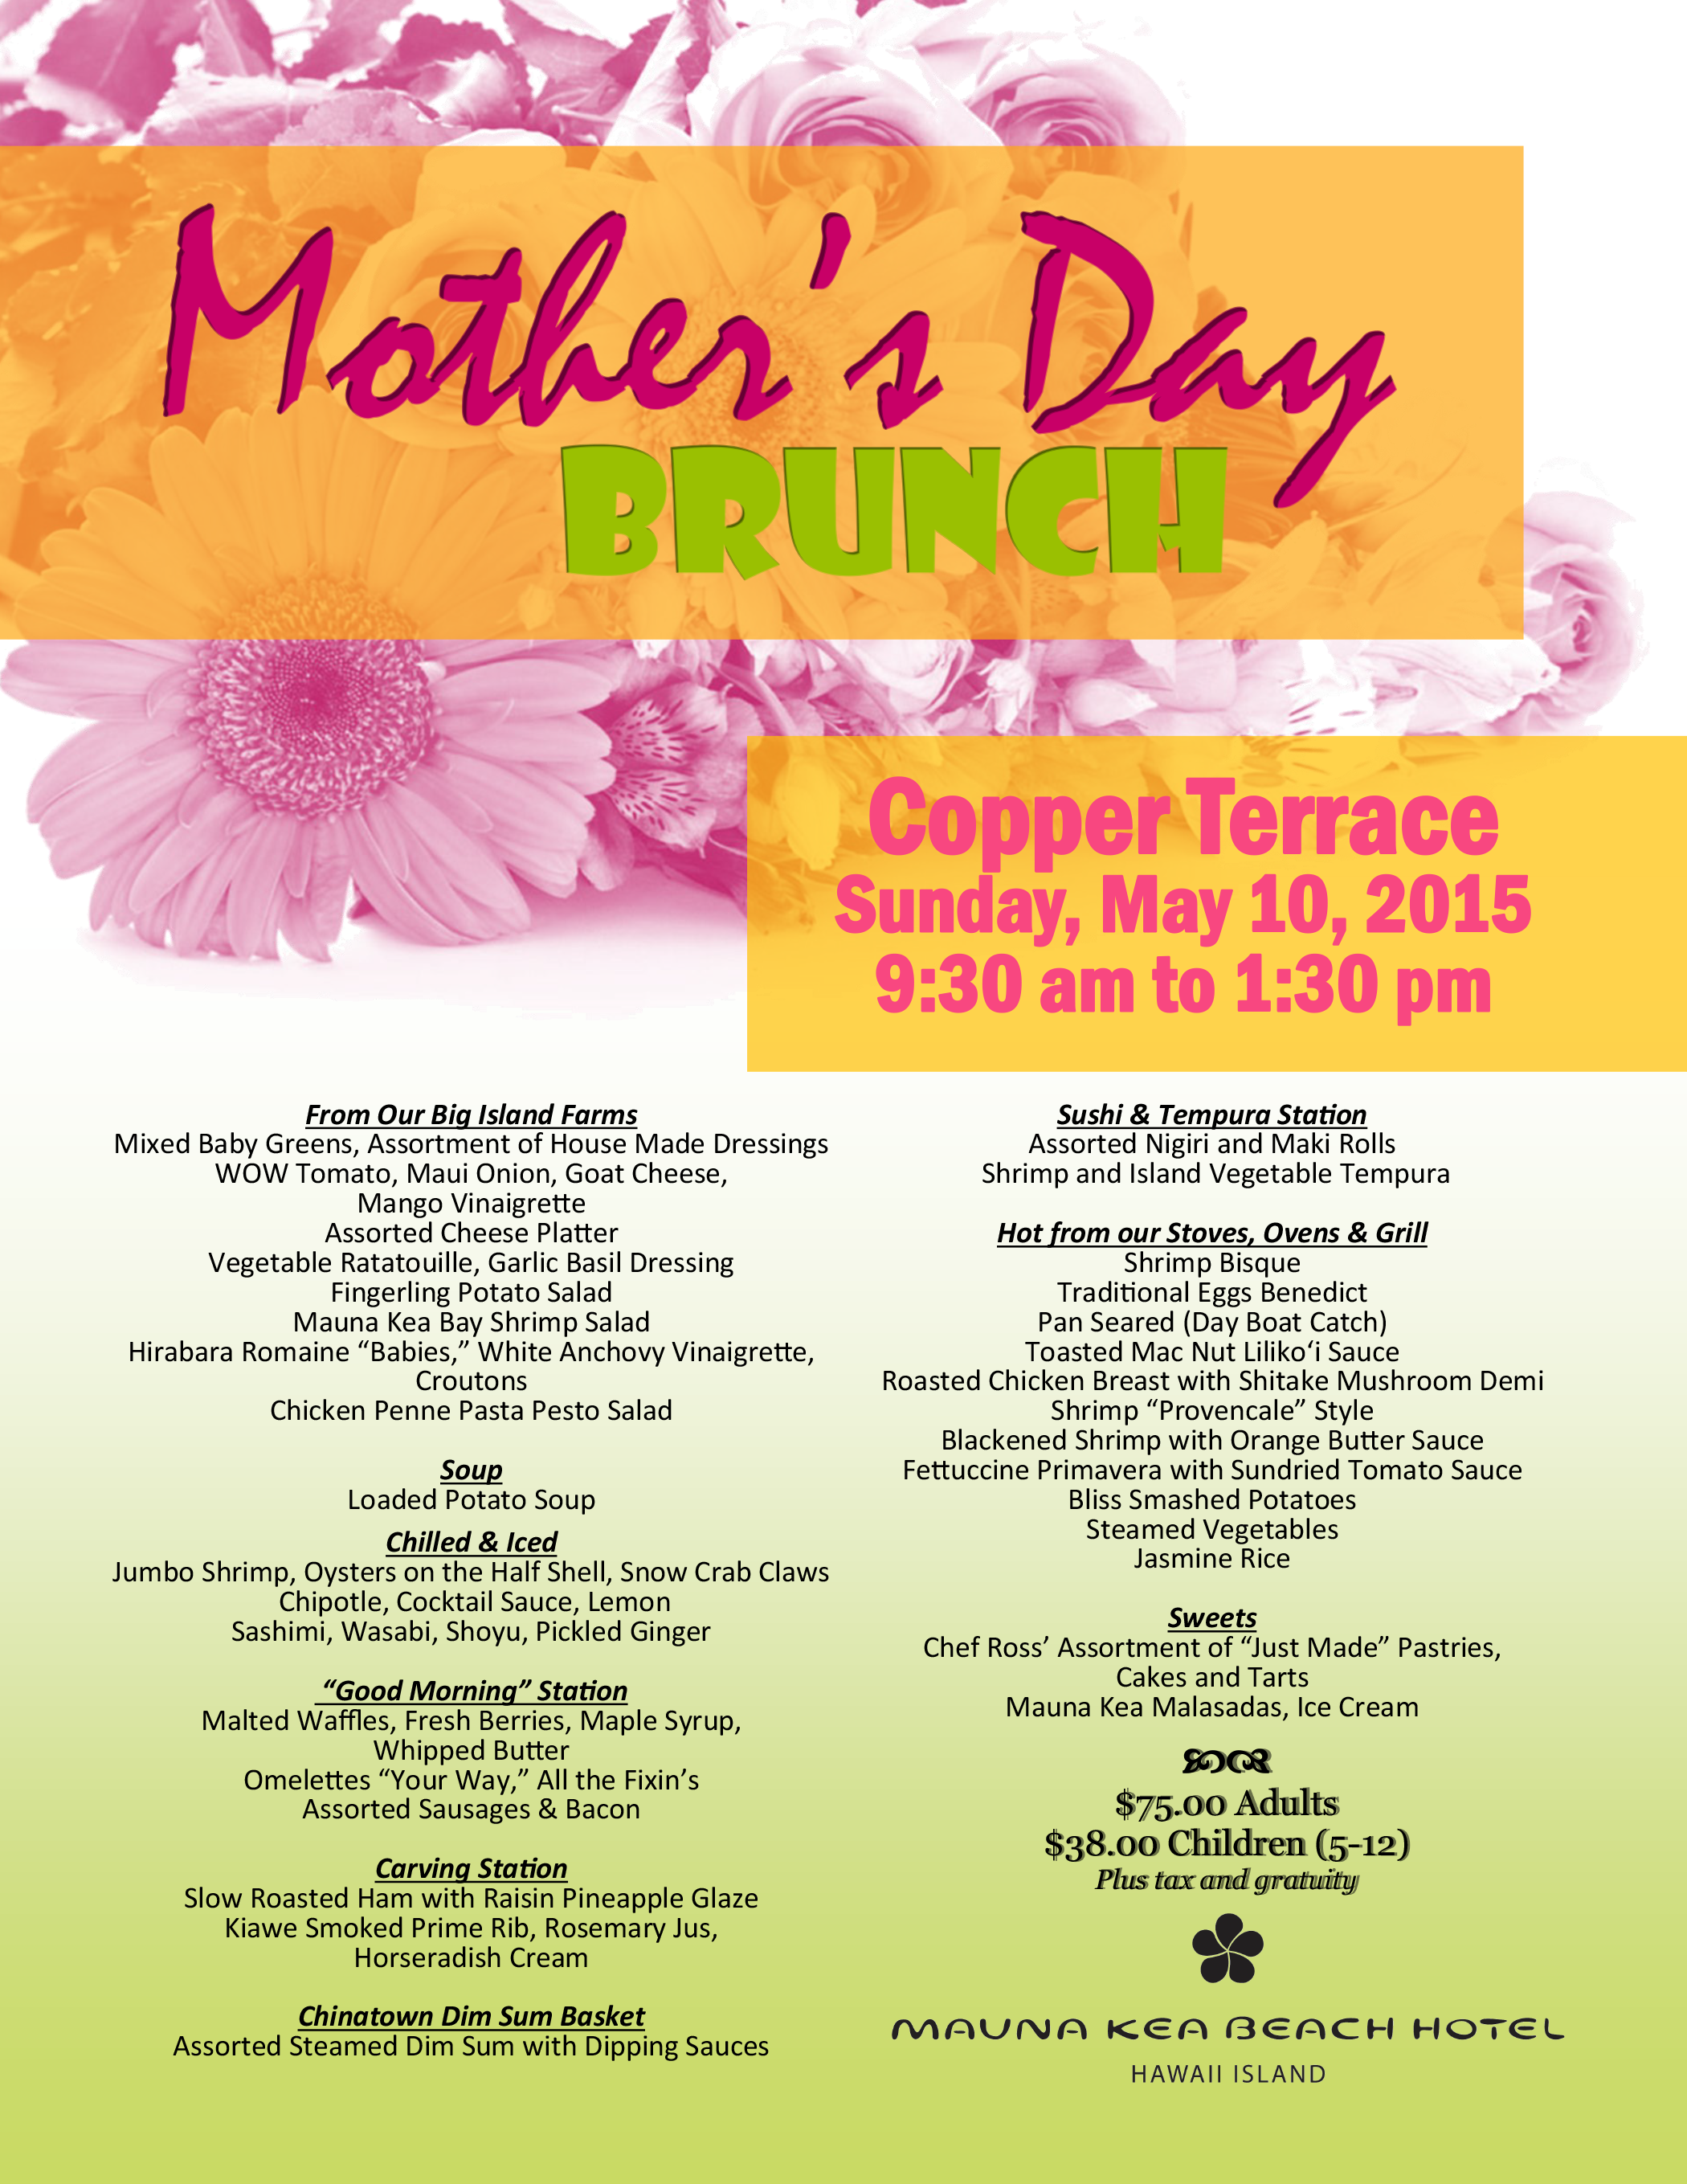 Treat your Mom on her special day at Mauna Kea Beach Hotel, Hawaii,  Mothers Day Brunch   #BigIslandEvents #Hawaii #Hawaiian #Island #BigIsland #Aloha #Travel #LifeStyle  #MothersDay #Mothers #Brunch #MaunaKea #LuxuryBigIsland